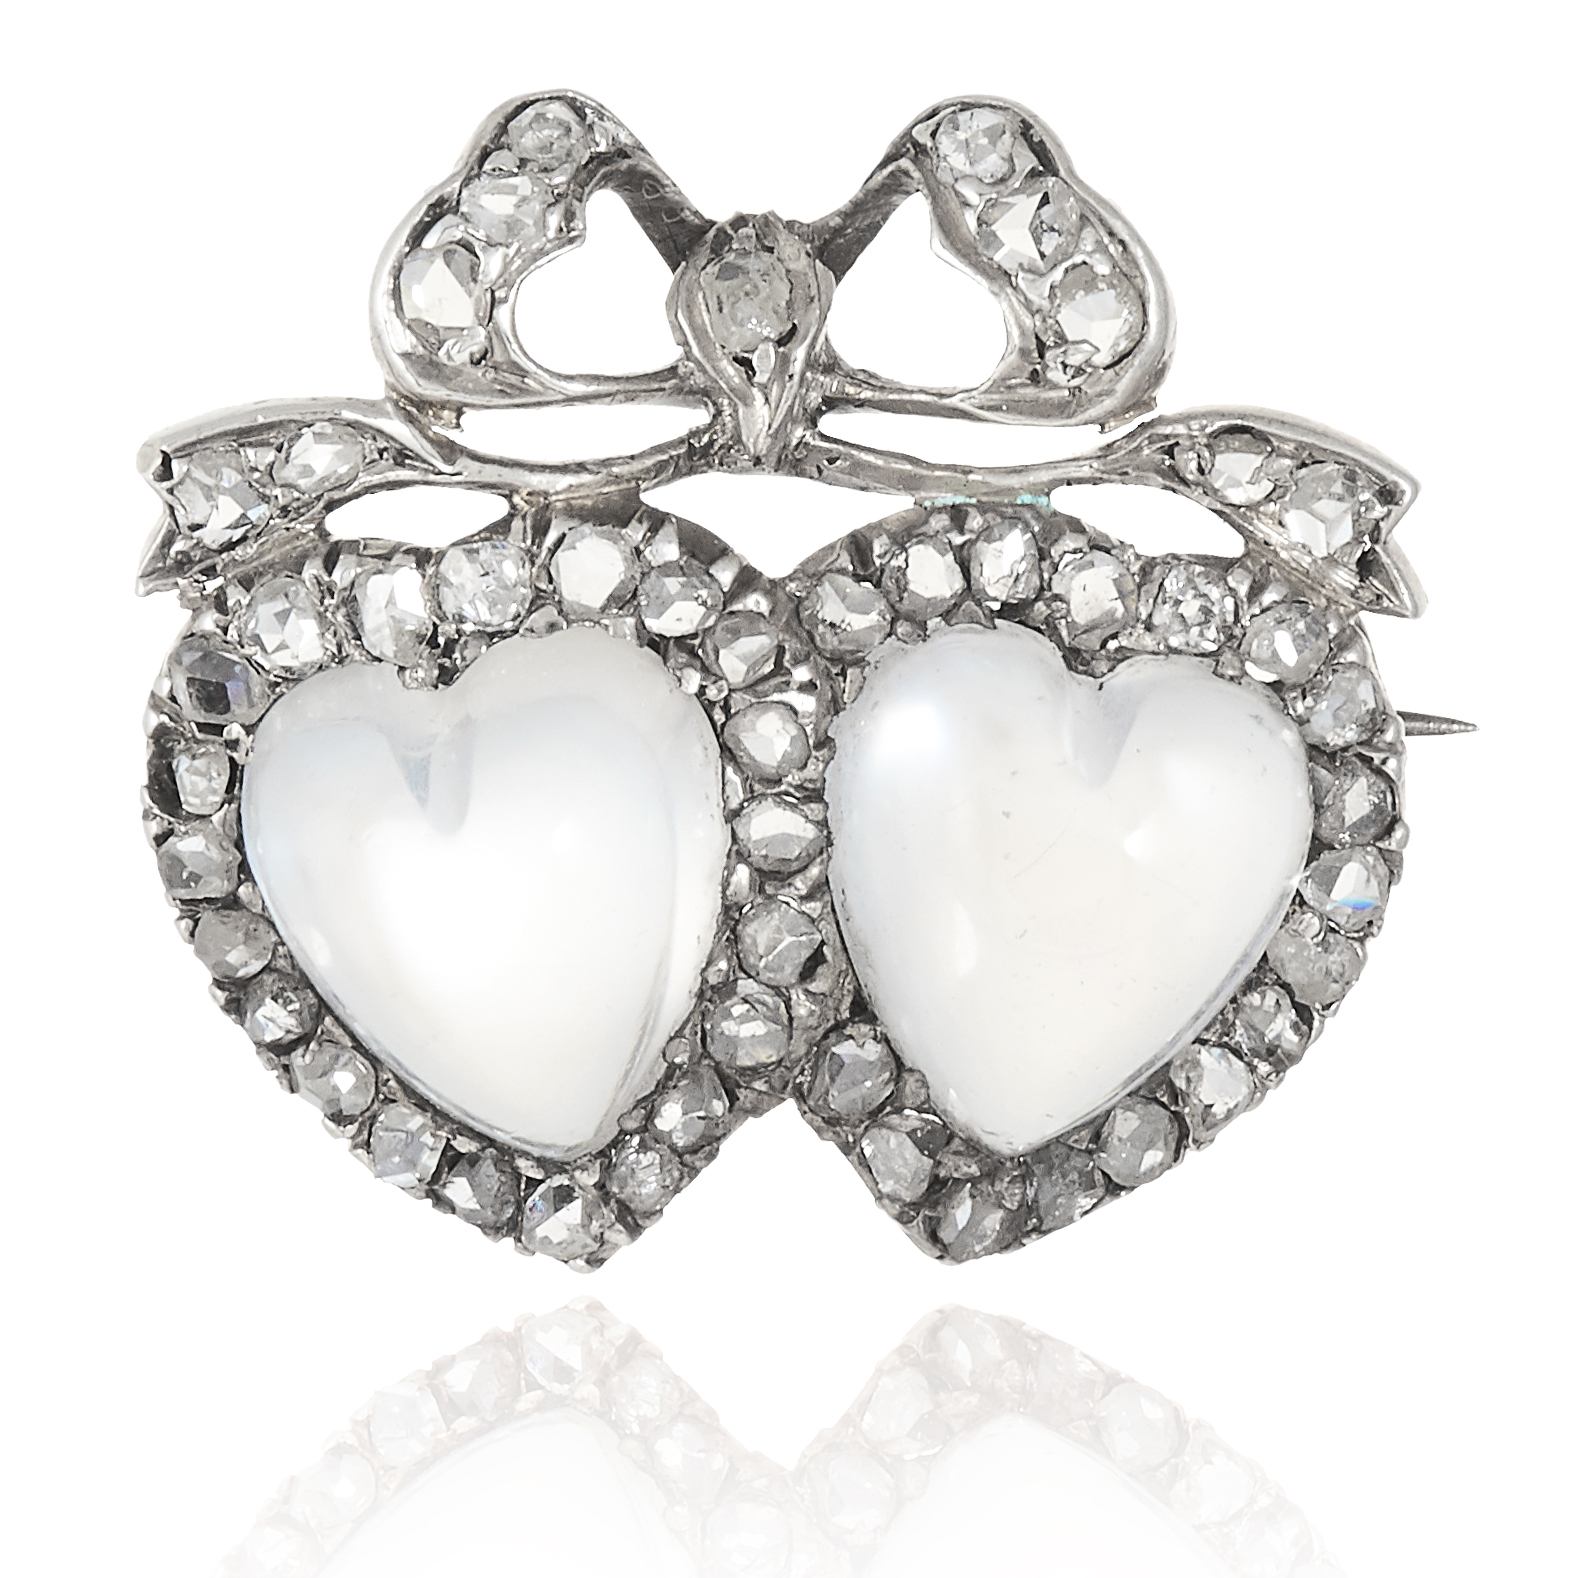 AN ANTIQUE MOONSTONE AND DIAMOND SWEETHEART BROOCH in yellow gold, set with two heart-shaped